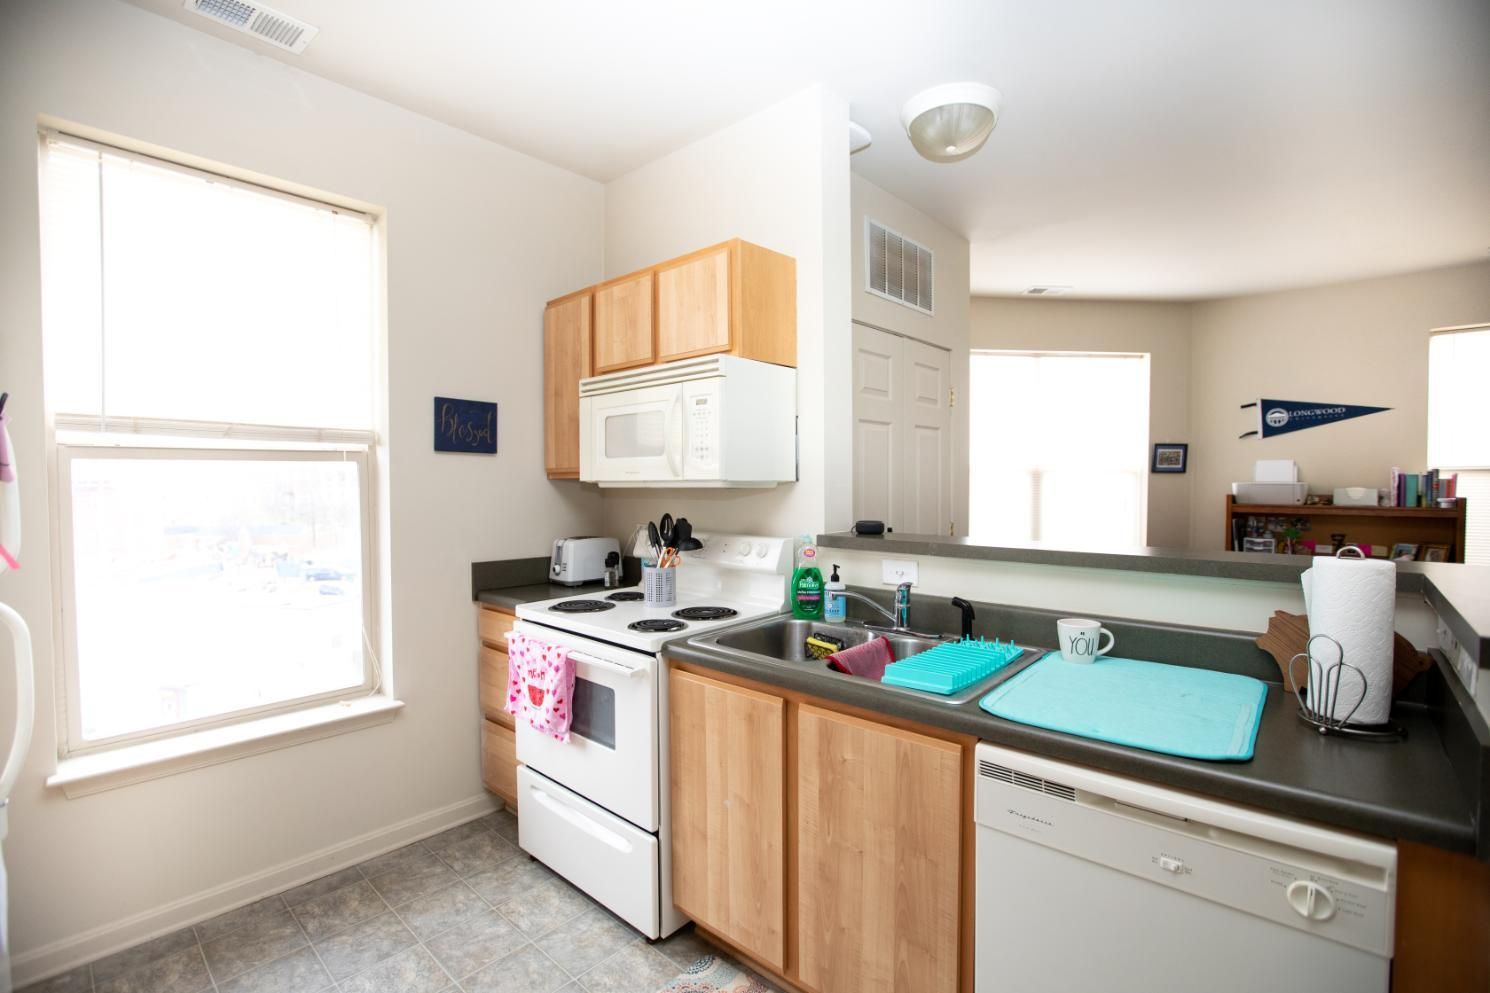 Longwood Landings Studio Apartment; view of kitchen from living area and bed area